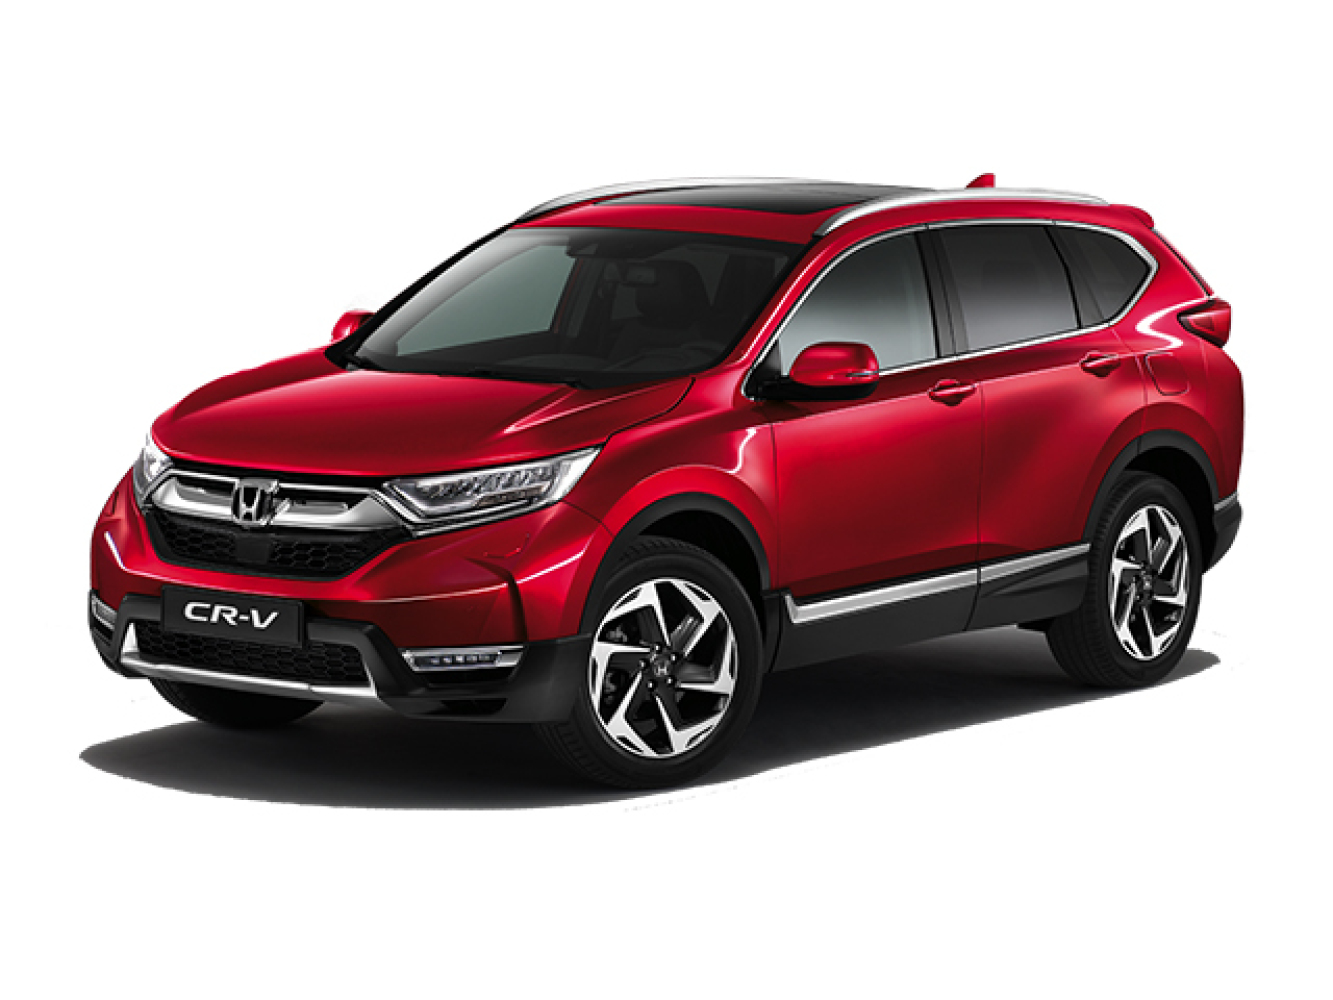 New Honda CR-V 1.5 Vtec Turbo Sr 5Dr [7 Seat] Petrol Estate for Sale | Vertu Honda